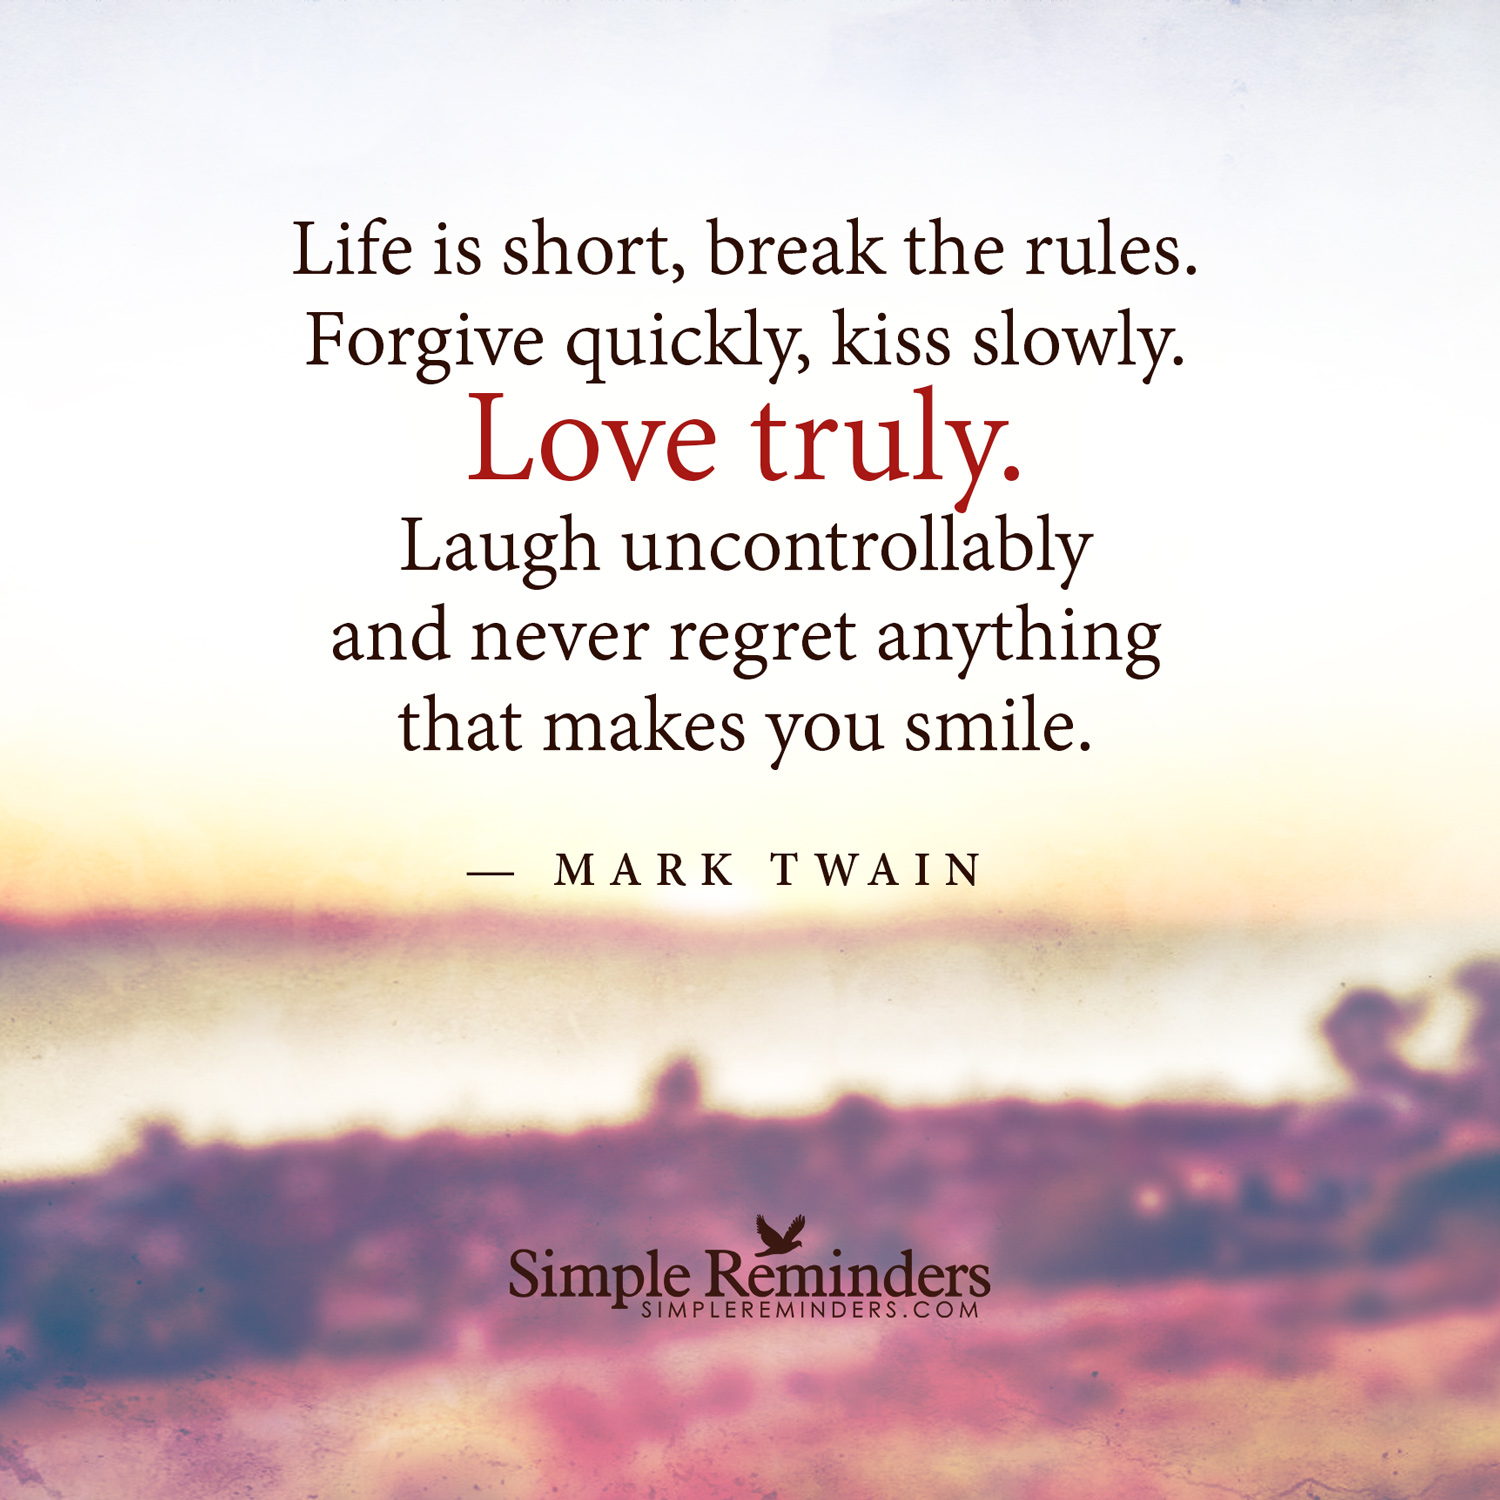 Mark Twain Quotes On Life Quotesgram